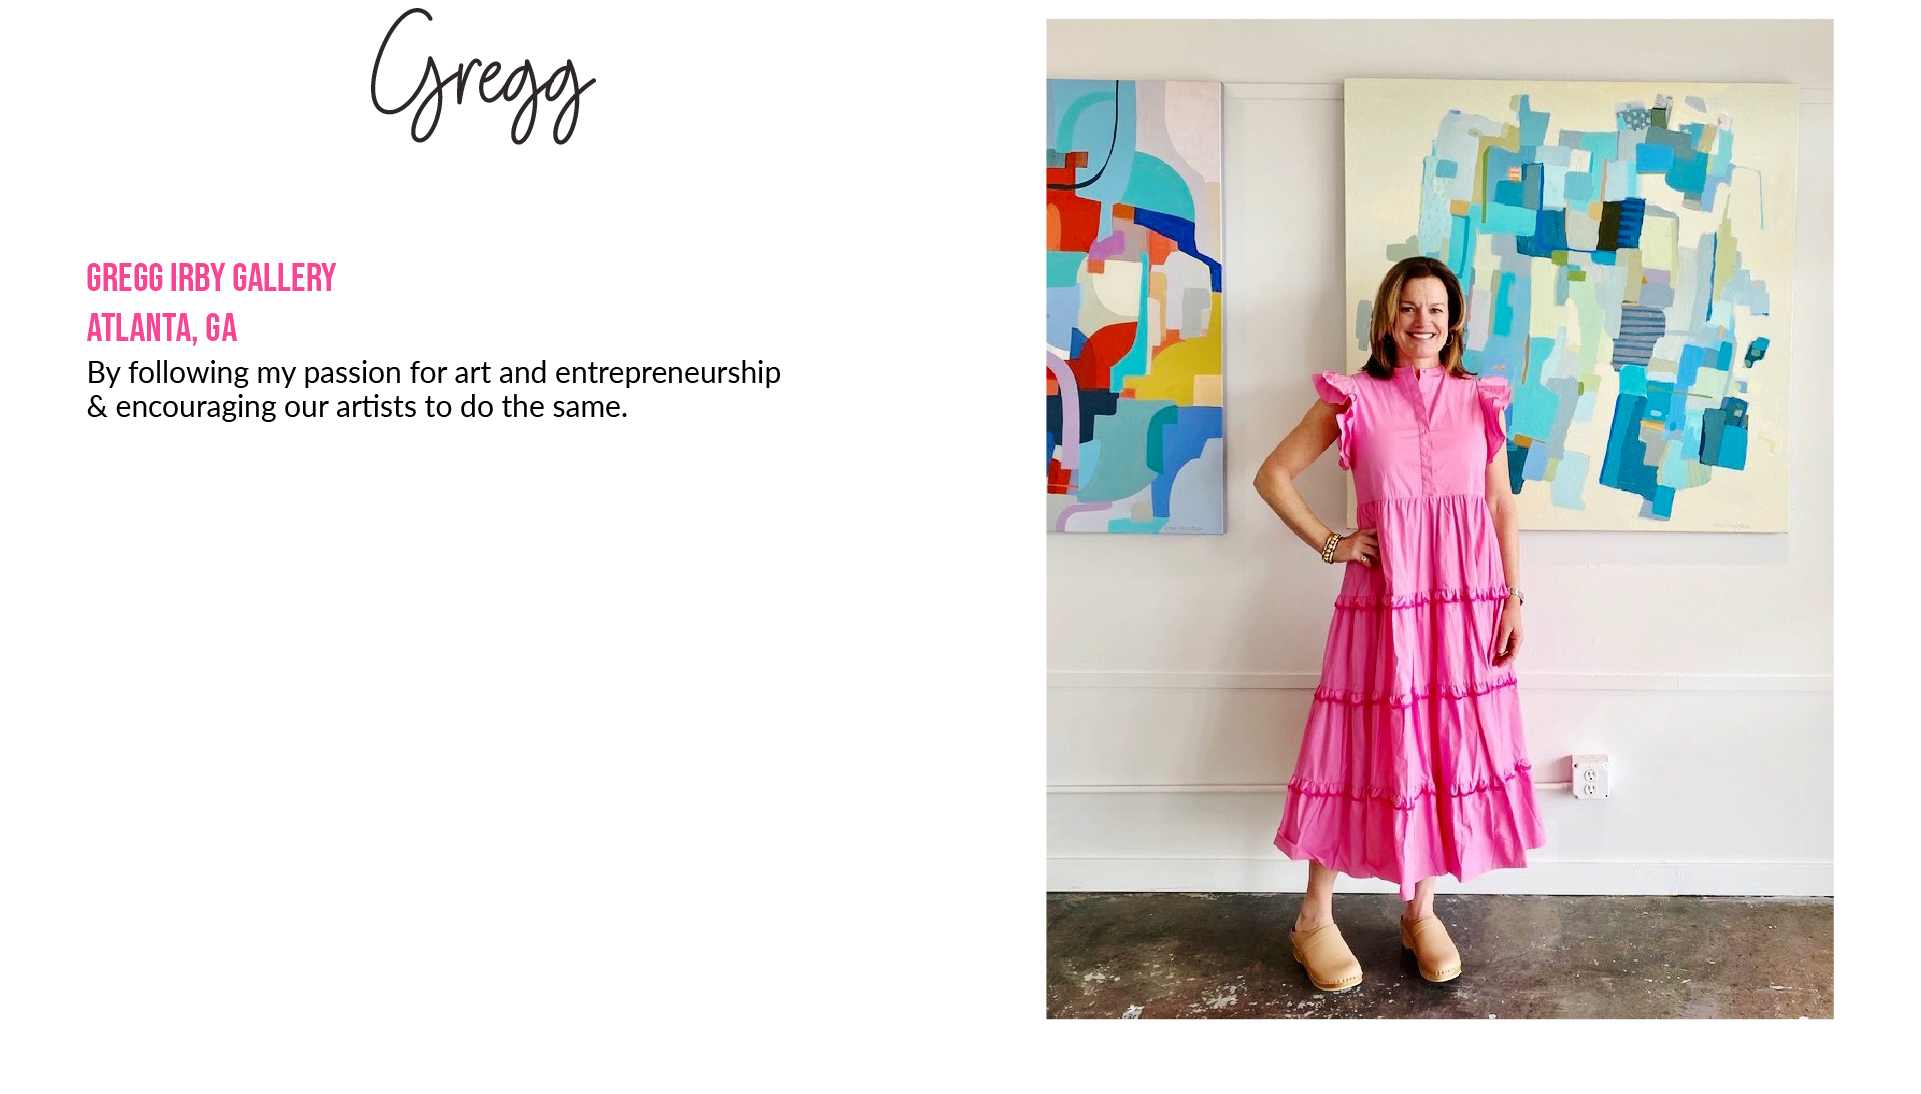 GreggGregg Irby GalleryAtlanta, GABy following my passion for art and entrepreneurship & encouraging ourartists to do the same.